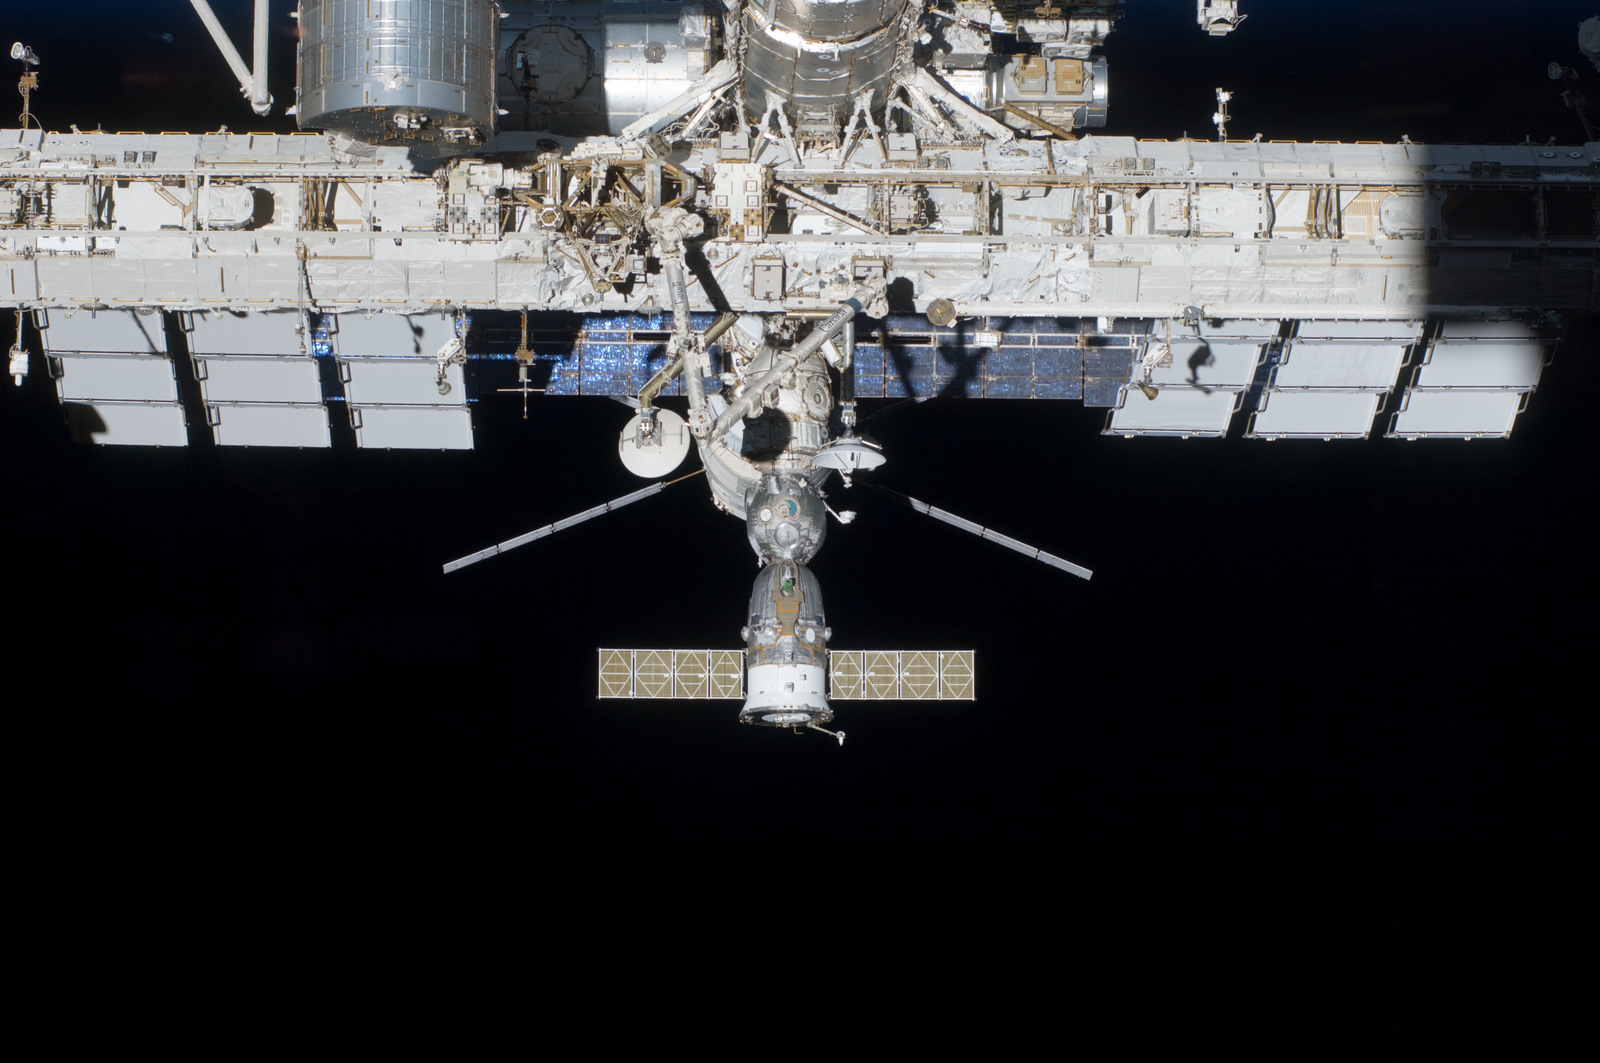 S134E010584 - STS-134 - View of ISS taken during STS-134 Flyaround